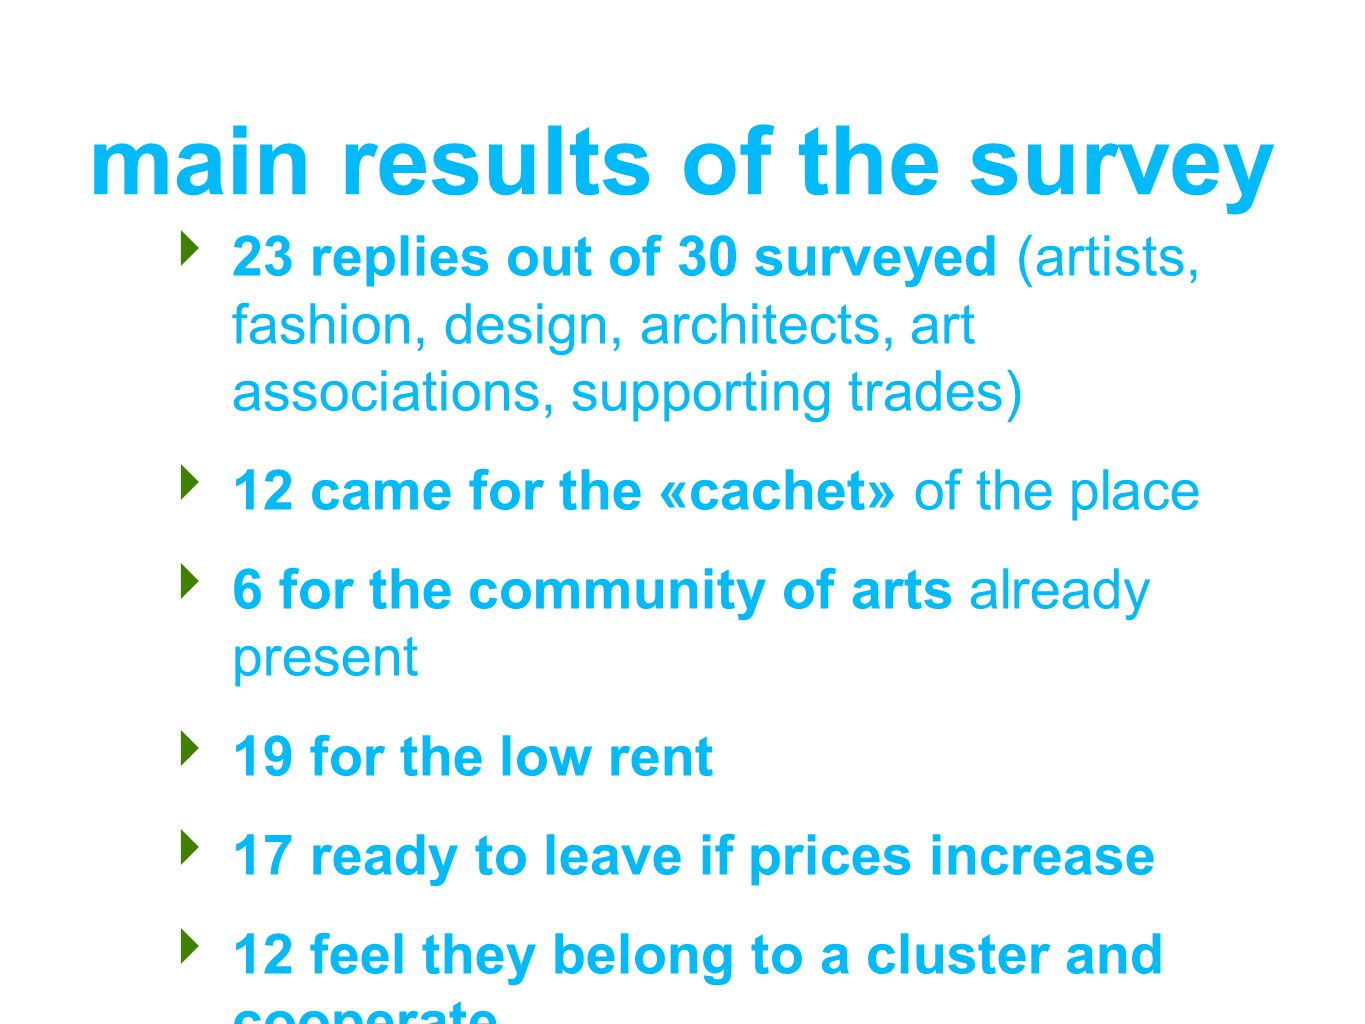 main results of the survey 23 replies out of 30 surveyed (artists, fashion, design, architects, art associations, supporting trades) 12 came for the «cachet» of the place 6 for the community of arts already present 19 for the low rent 17 ready to leave if prices increase 12 feel they belong to a cluster and cooperate